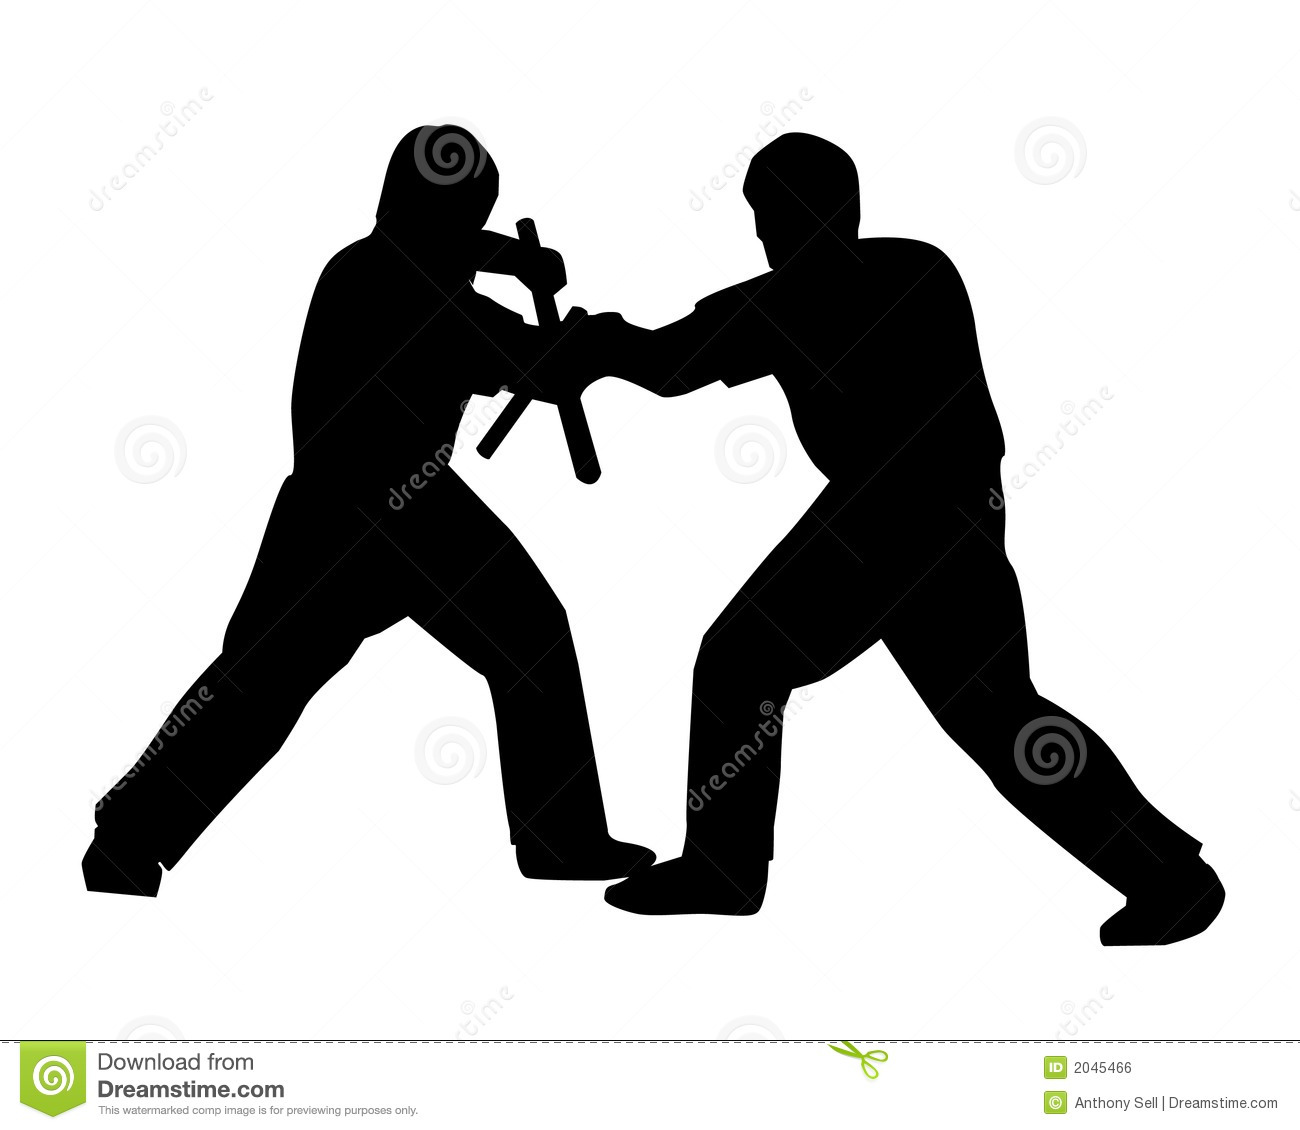 Sport clipart arnis Search silhouette Google silhouette arnis